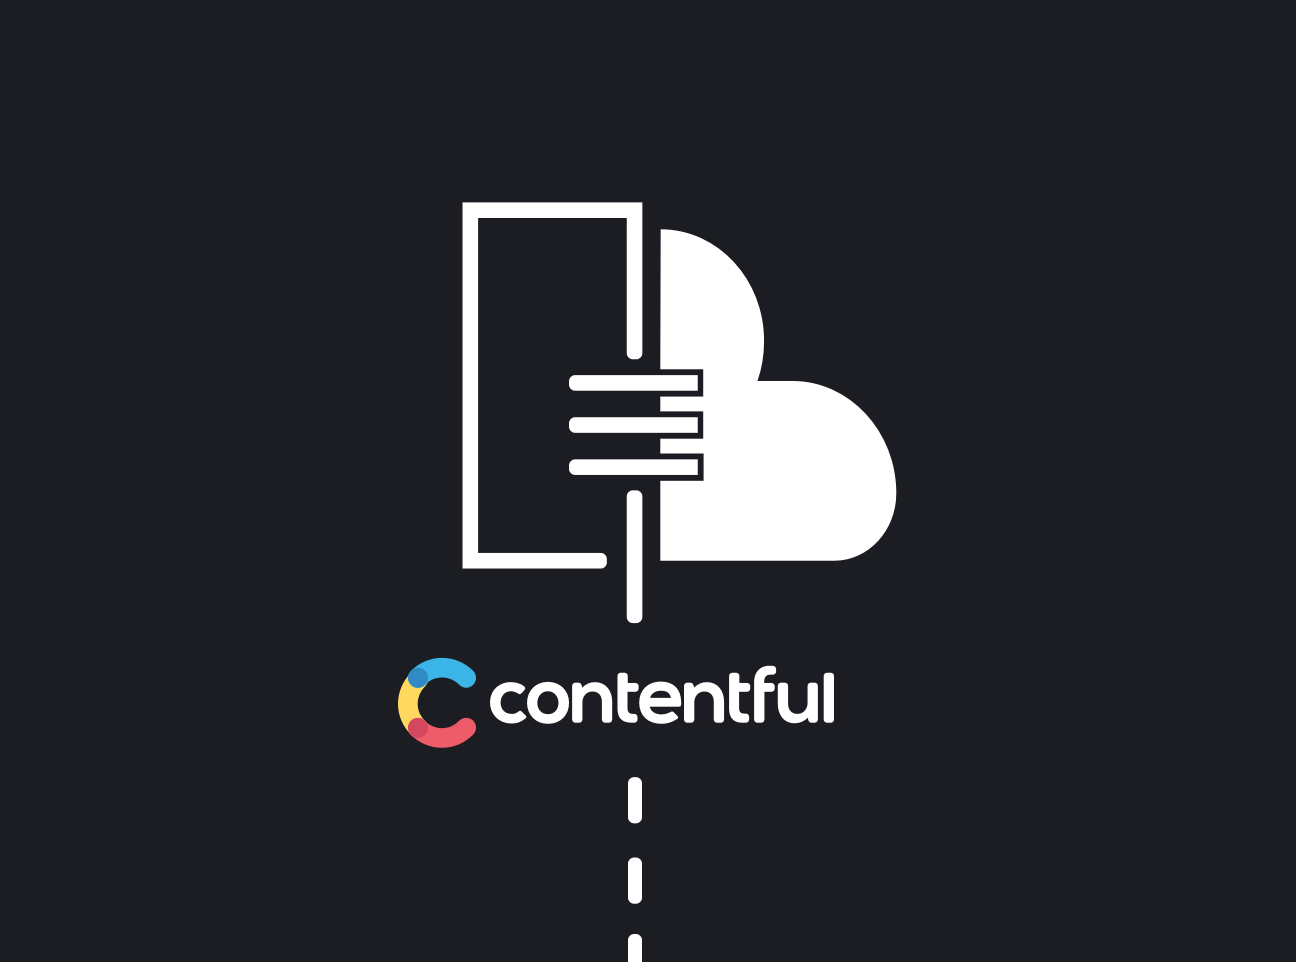 Contentful: Using reverse headless as an approach to headless feature image